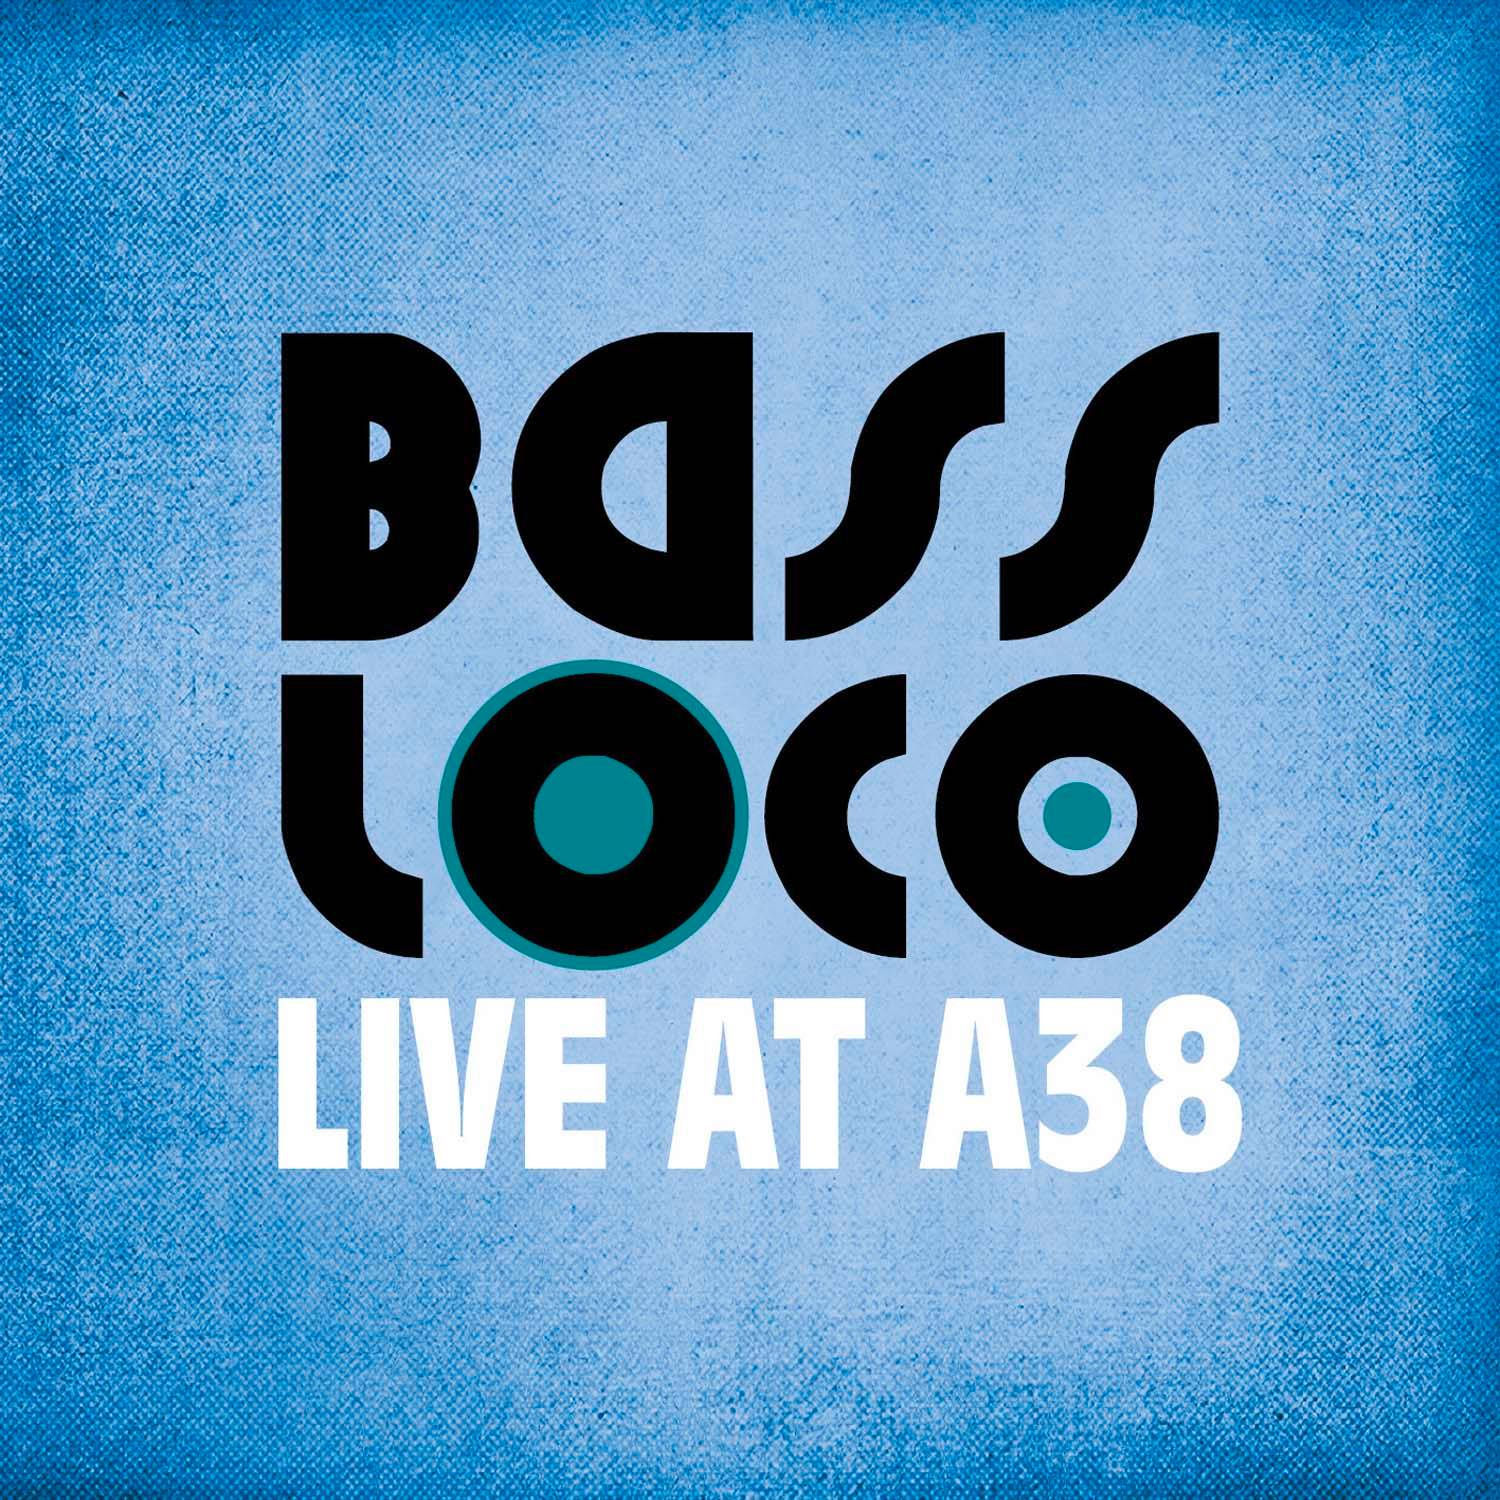 bass_loco_live_at_a38_front